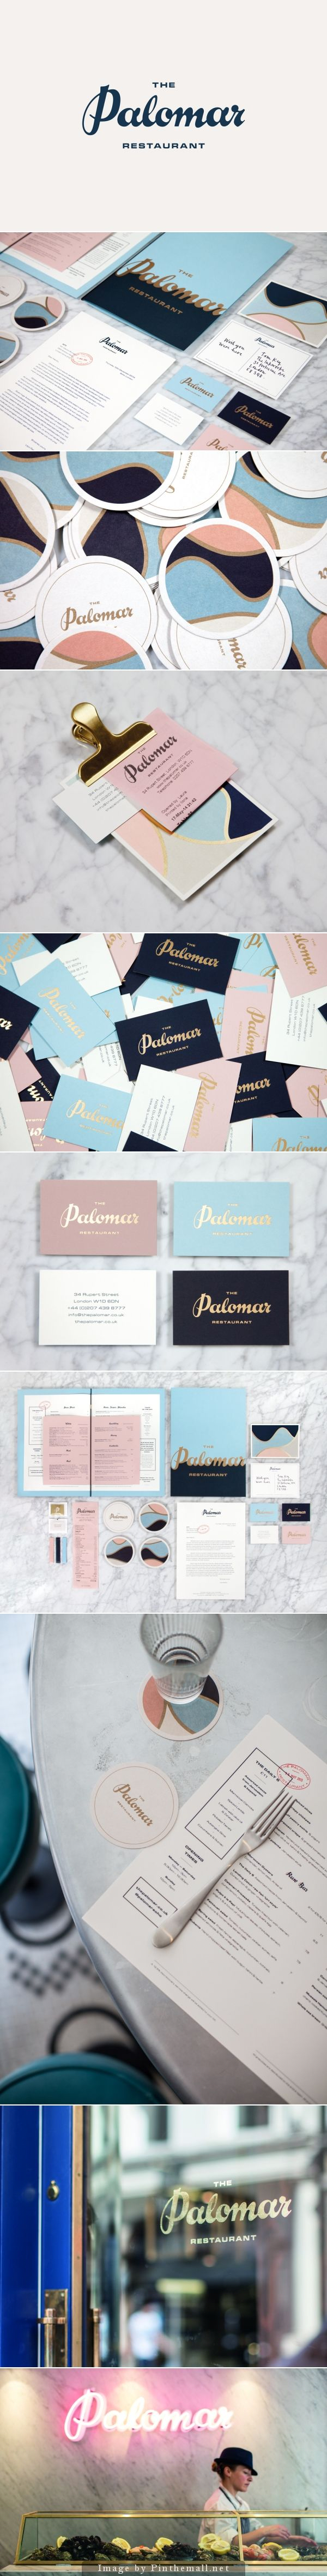 Corporate Design für Restaurant The Palomar / Goldprägung Text and colour palette